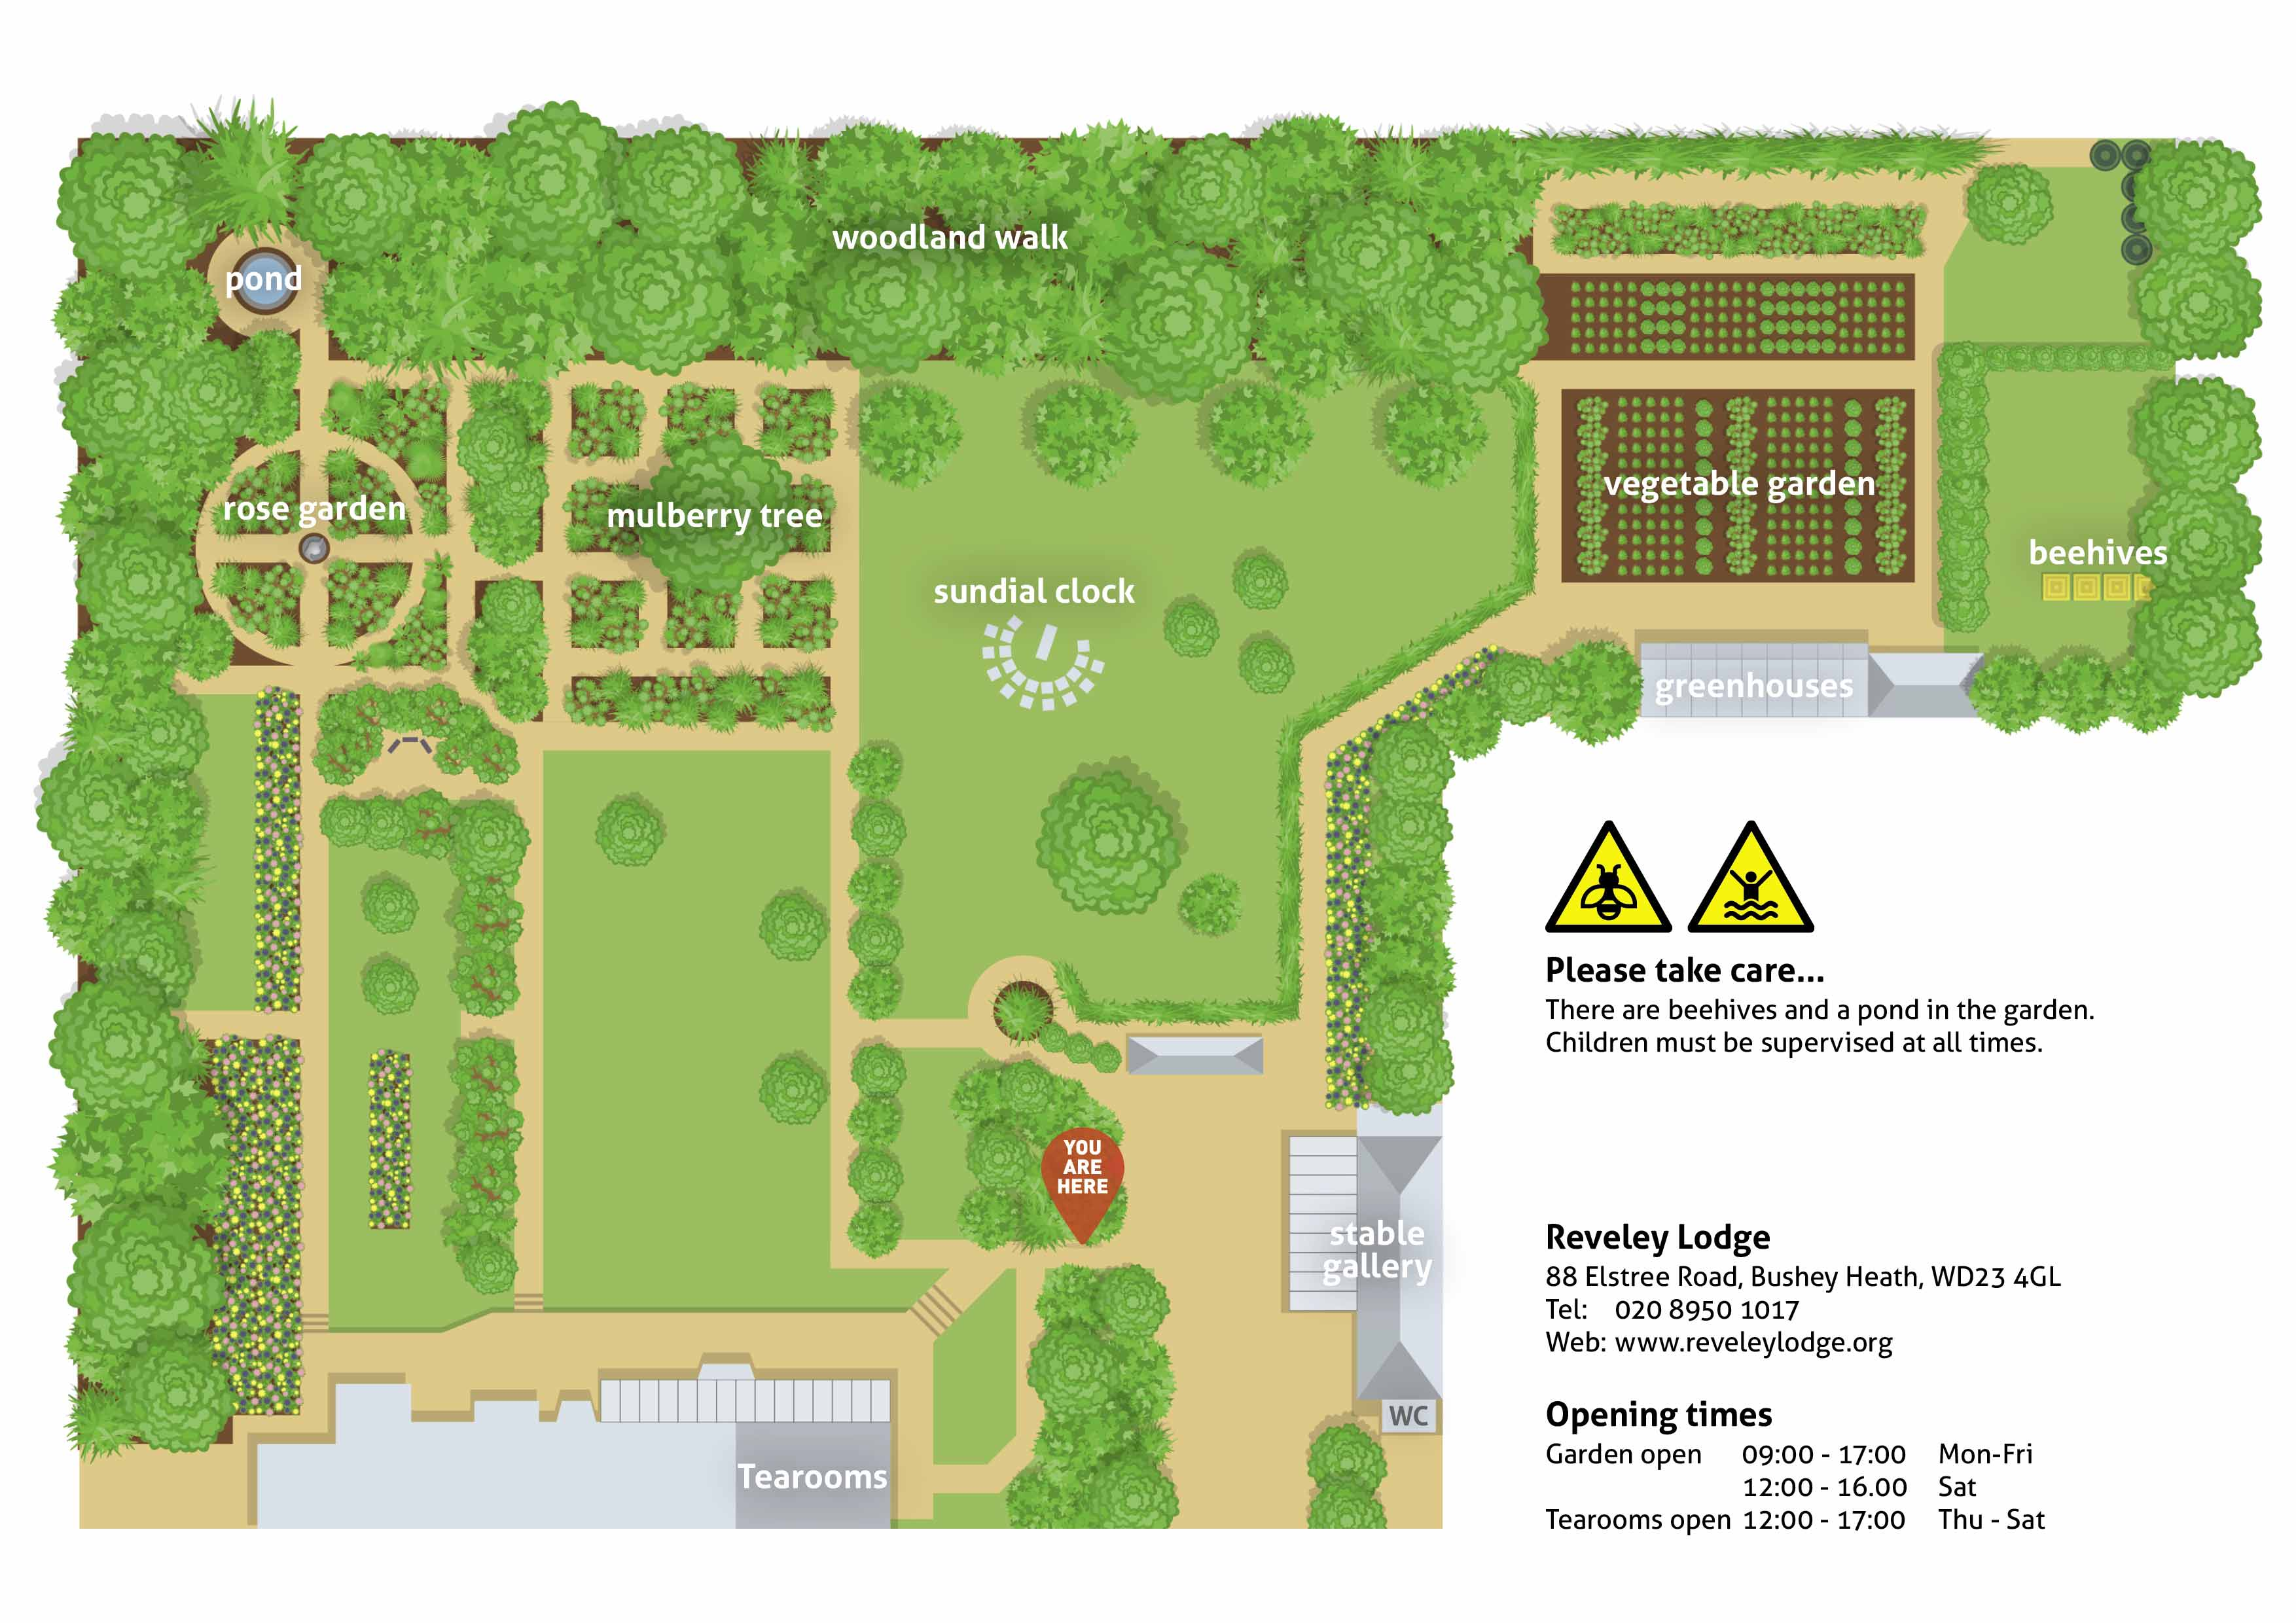 A map of Reveley Lodge garden showing the rose garden, pond, woodland walk, sundial, vegetable garden, beehives, stables gallery and tearooms.